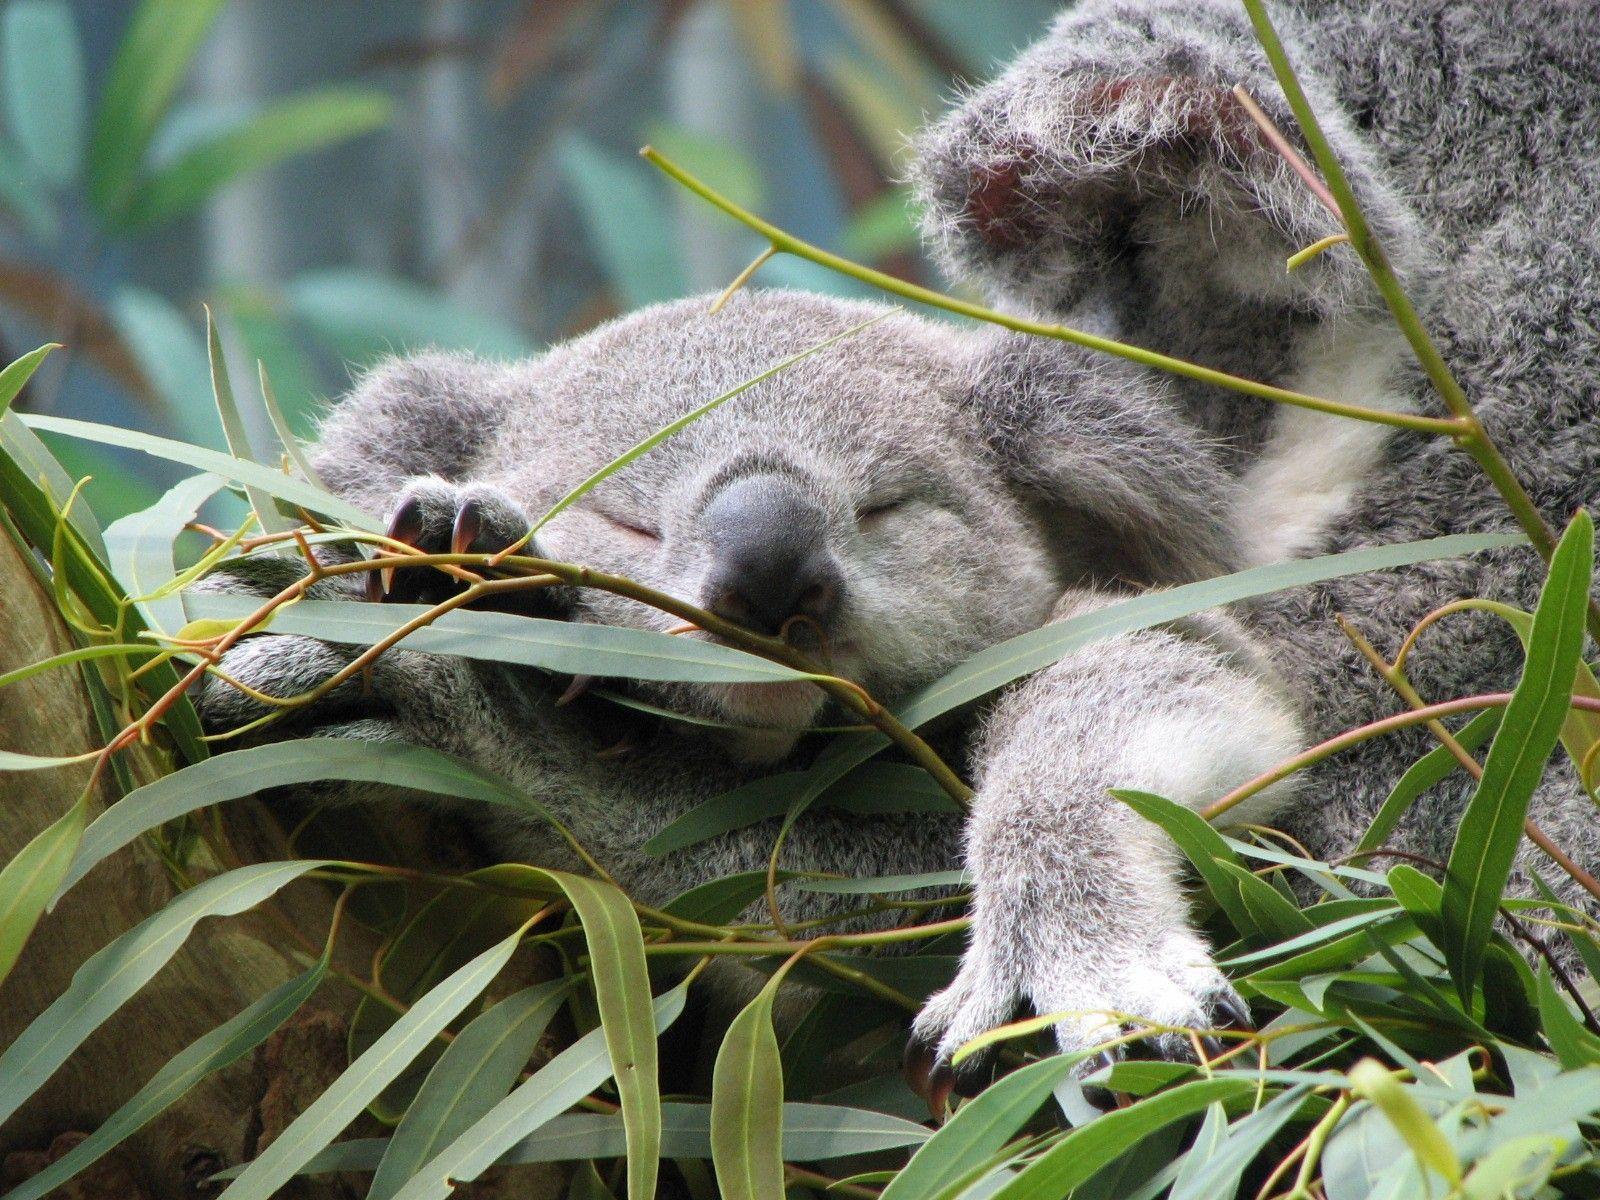 Download Koala Wallpaper 12963 1600x1200 px High Resolution ...